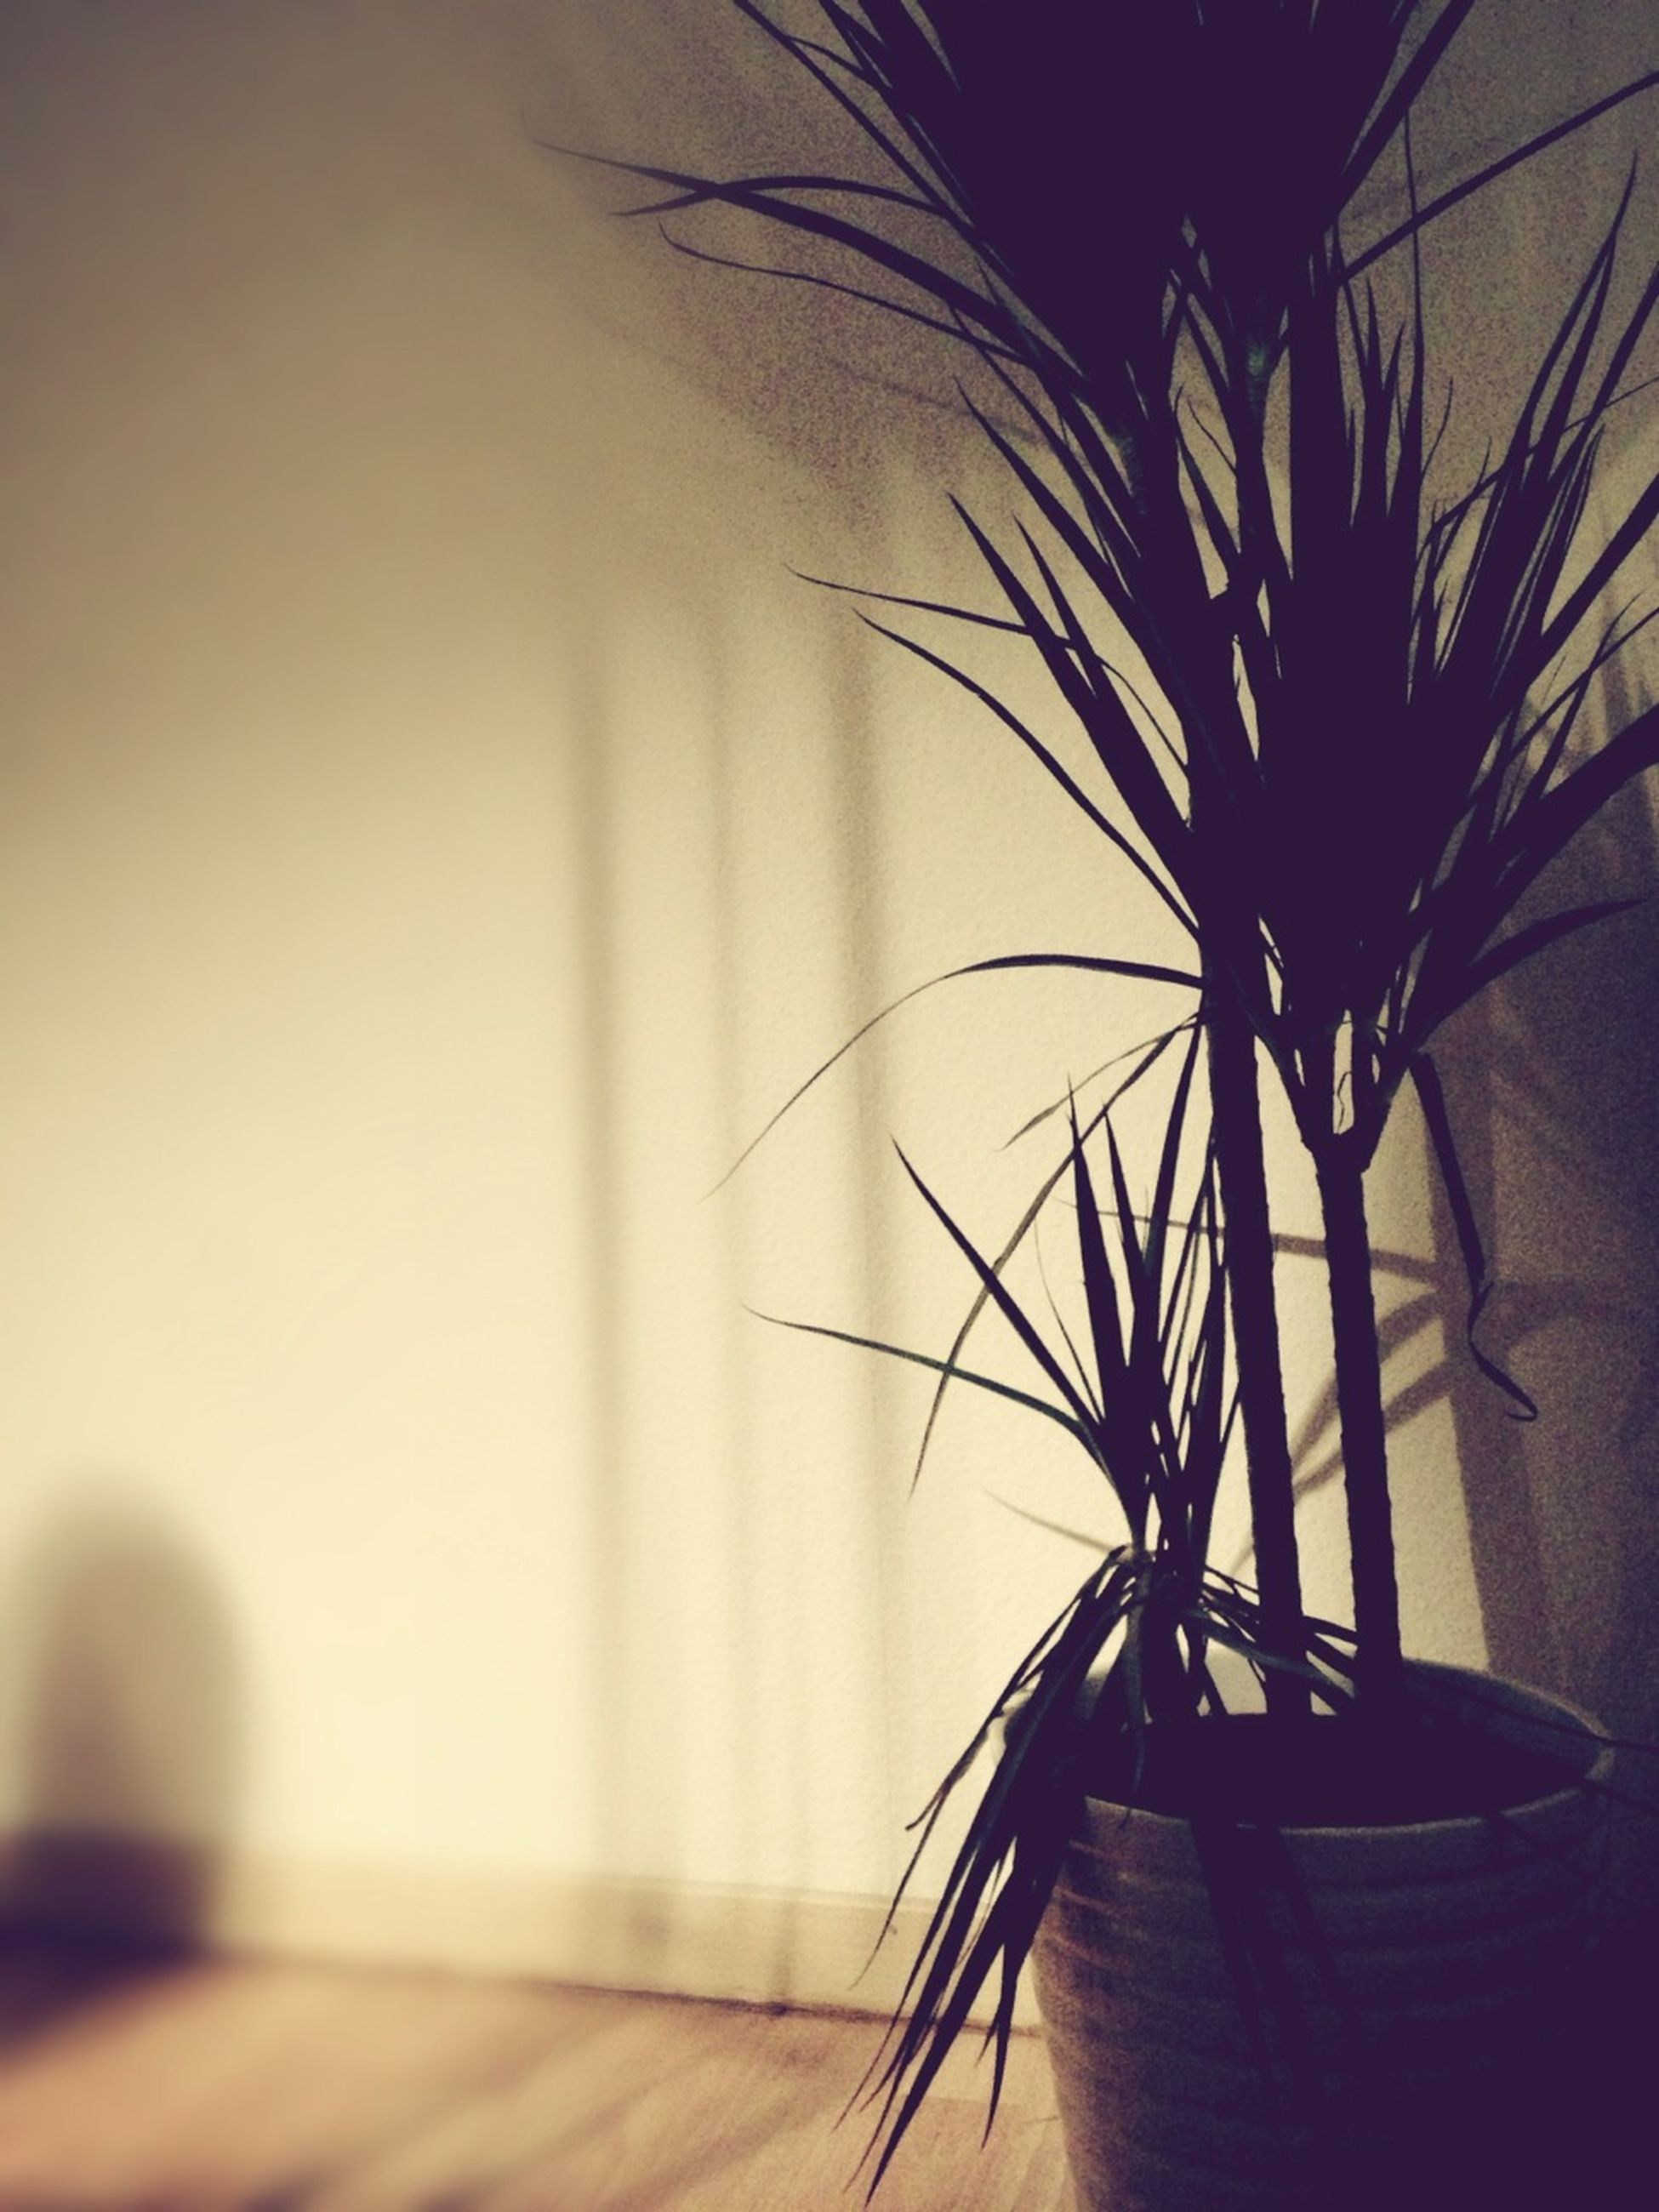 silhouette, palm tree, indoors, potted plant, focus on foreground, plant, growth, close-up, no people, nature, sunset, sunlight, home interior, low angle view, clear sky, shadow, selective focus, copy space, dusk